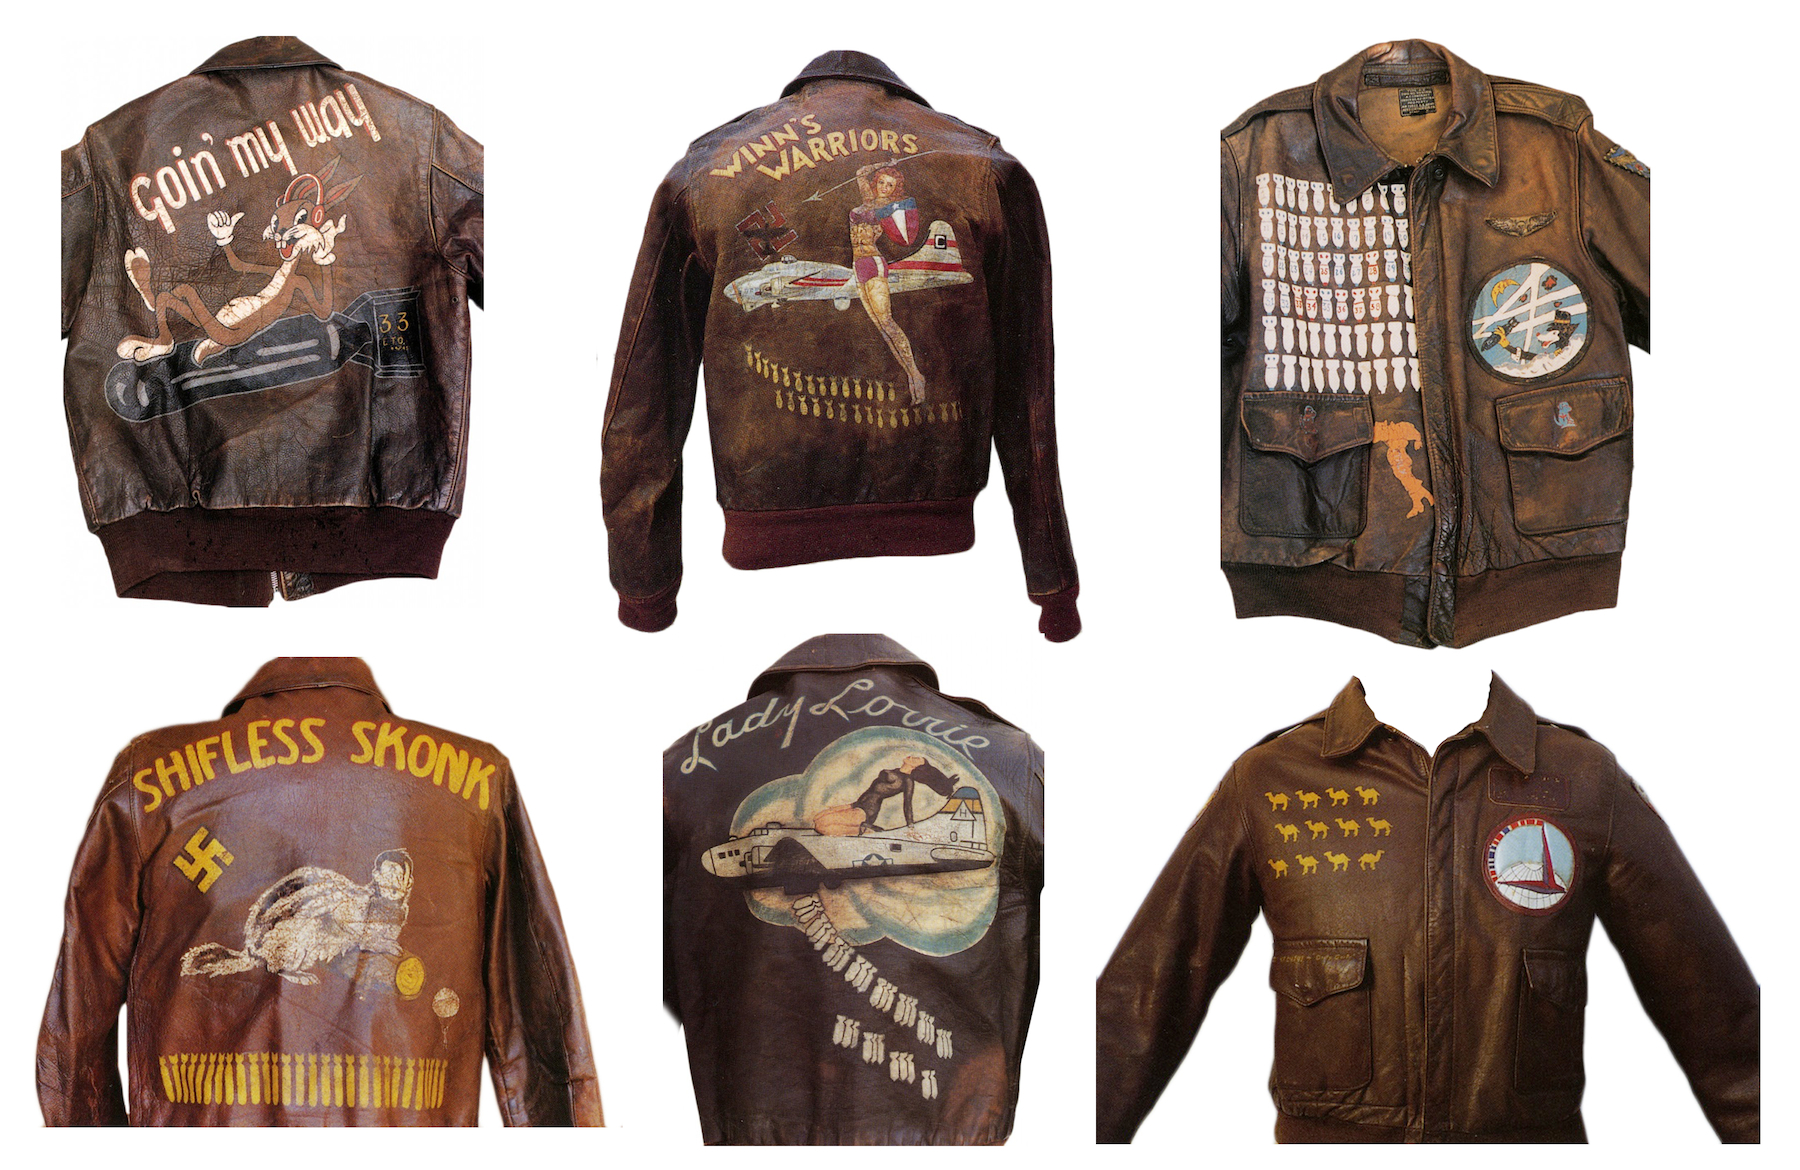 Painted WWII Bomber Jackets  A camel indicates a flight over the Himalayas, a camel facing reverse marks an aborted mission. A swastika marks a German aircraft destroyed. A parachute indicates the pilot had to jump. A bomb indicates the amount of missions